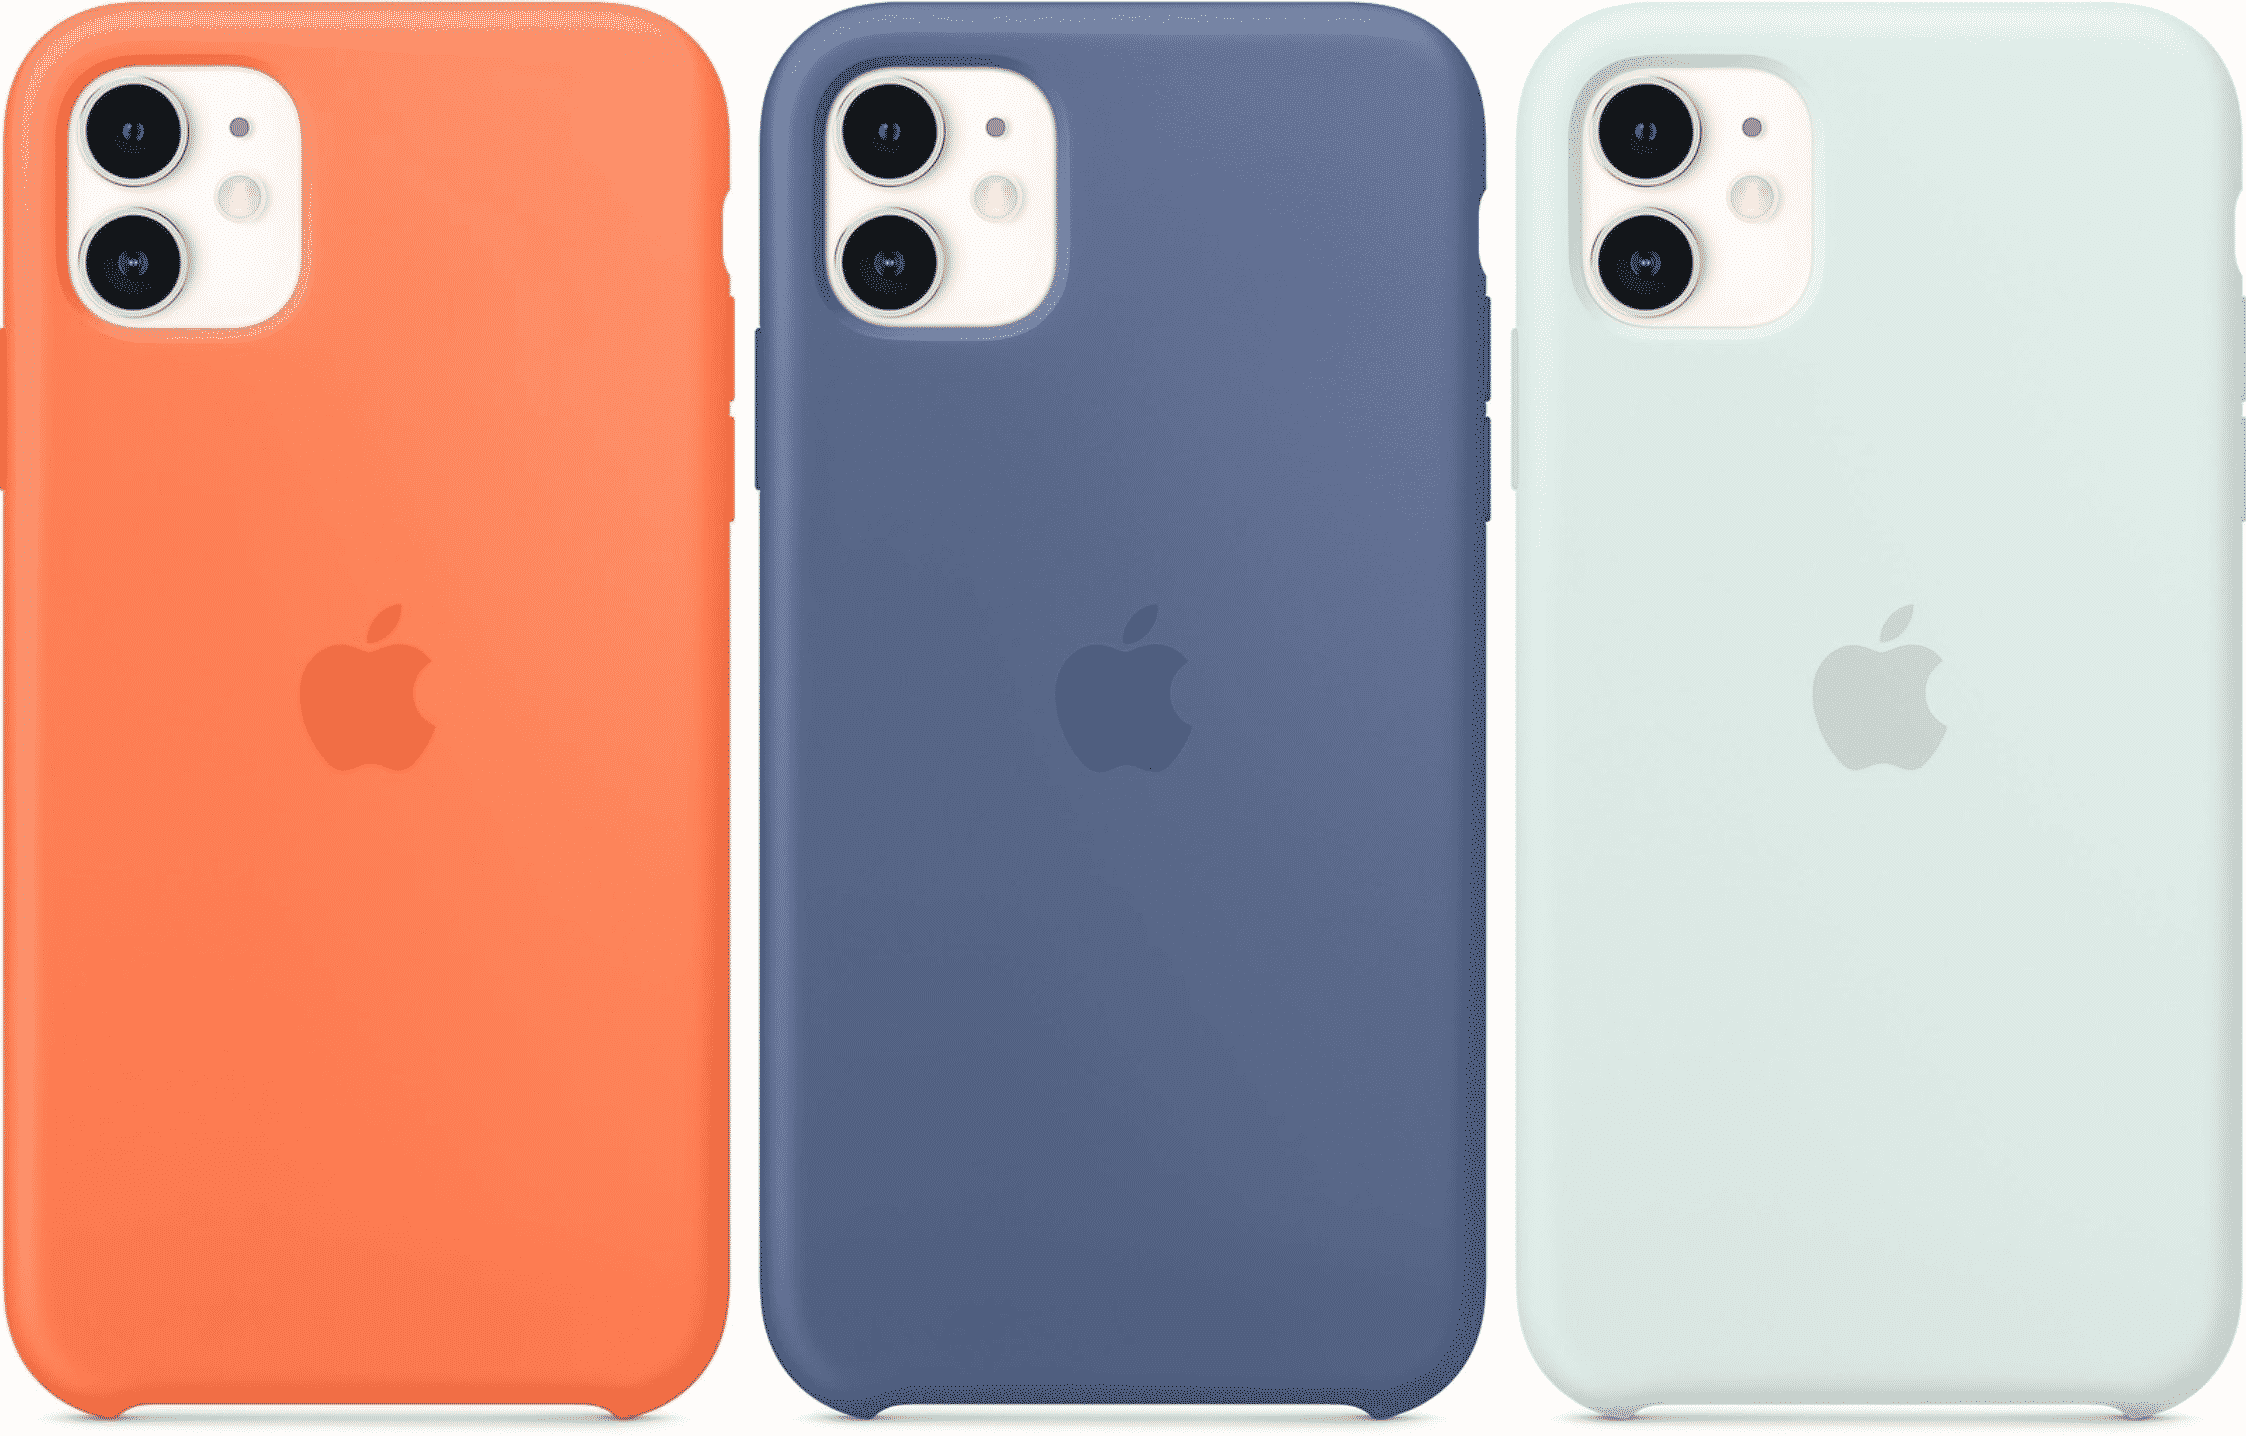 Cases for iPhone 11 and iPhone 11 Pro